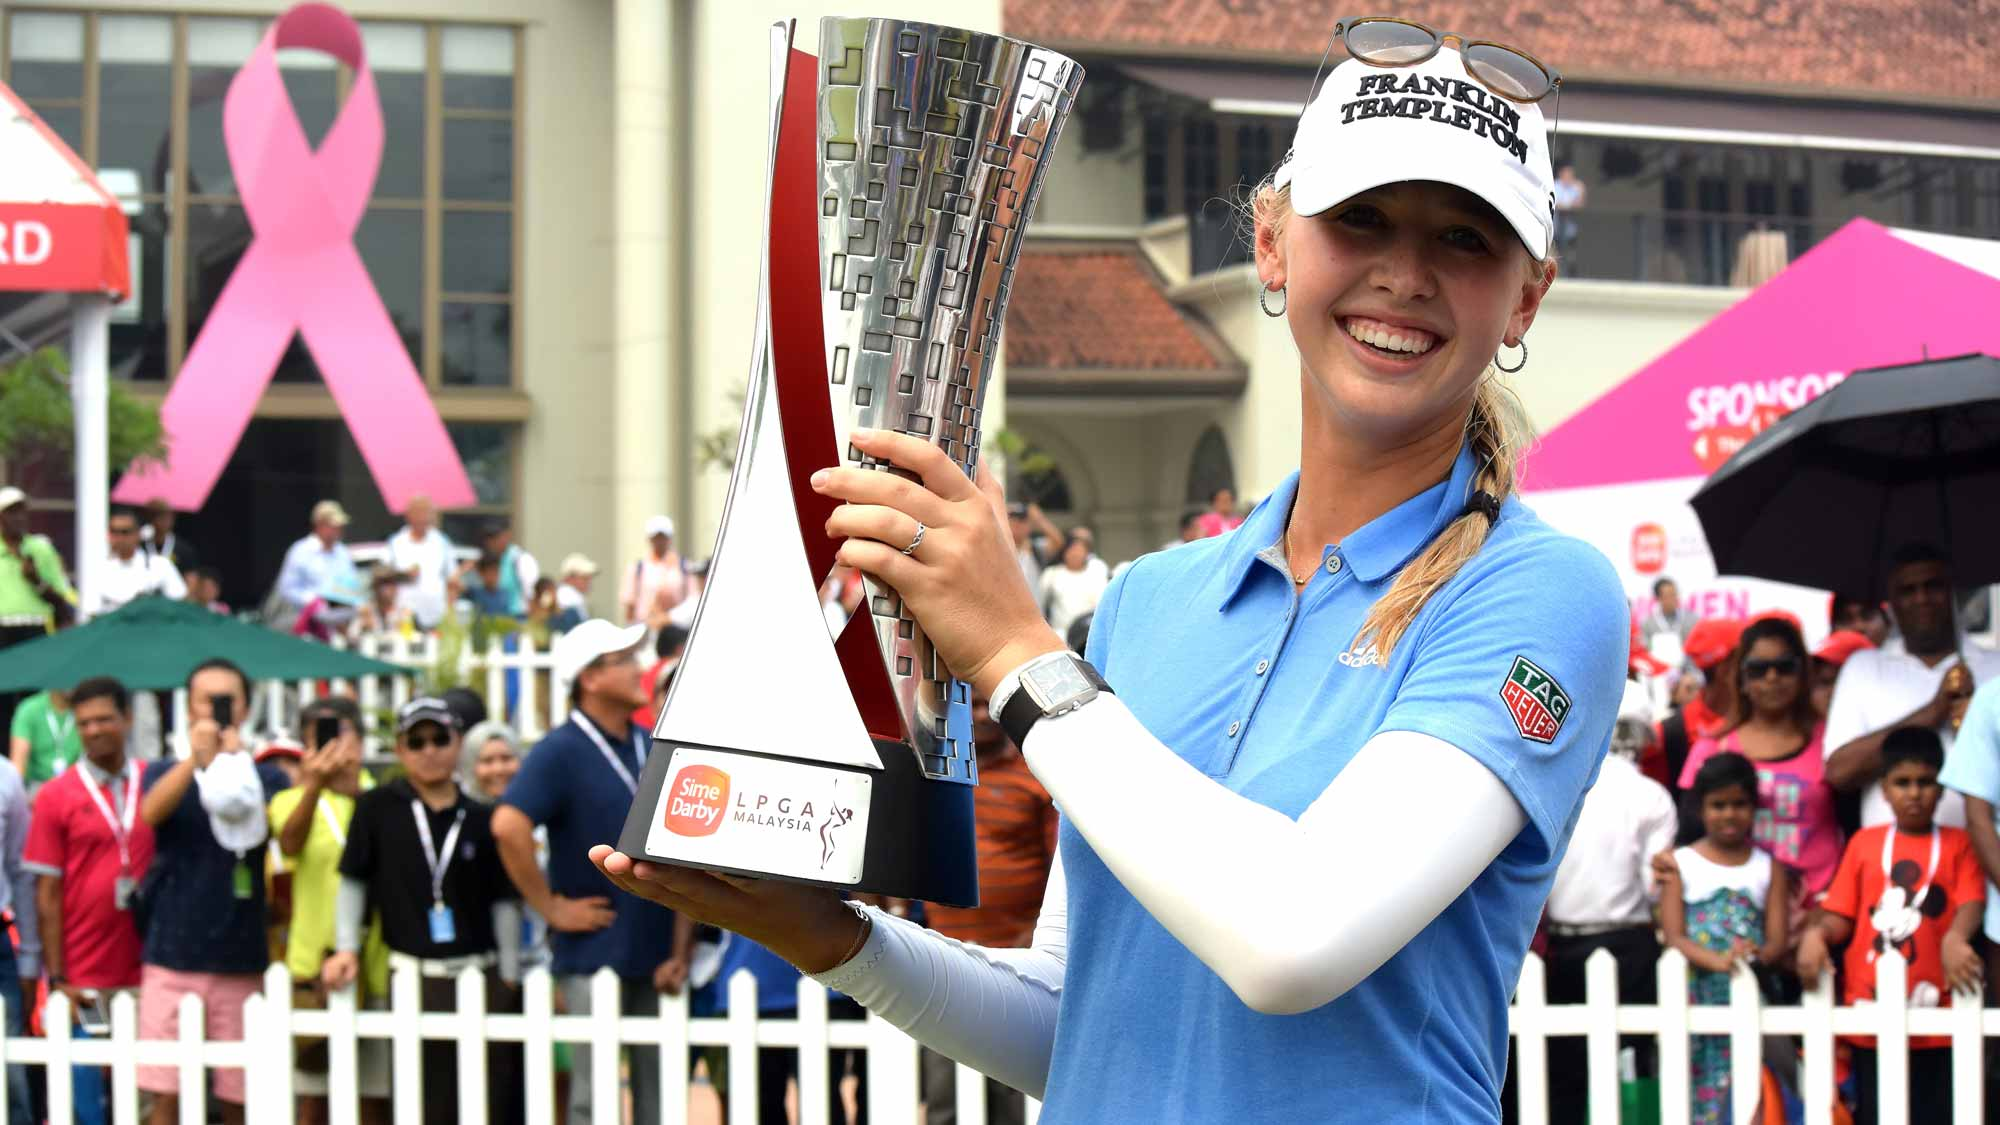 Jessica Korda of USA poses with the 2015 Sime Darby LPGA Tour trophy during the live TV presentation after the final round of the Sime Darby LPGA Tour at Kuala Lumpur Golf & Country Club